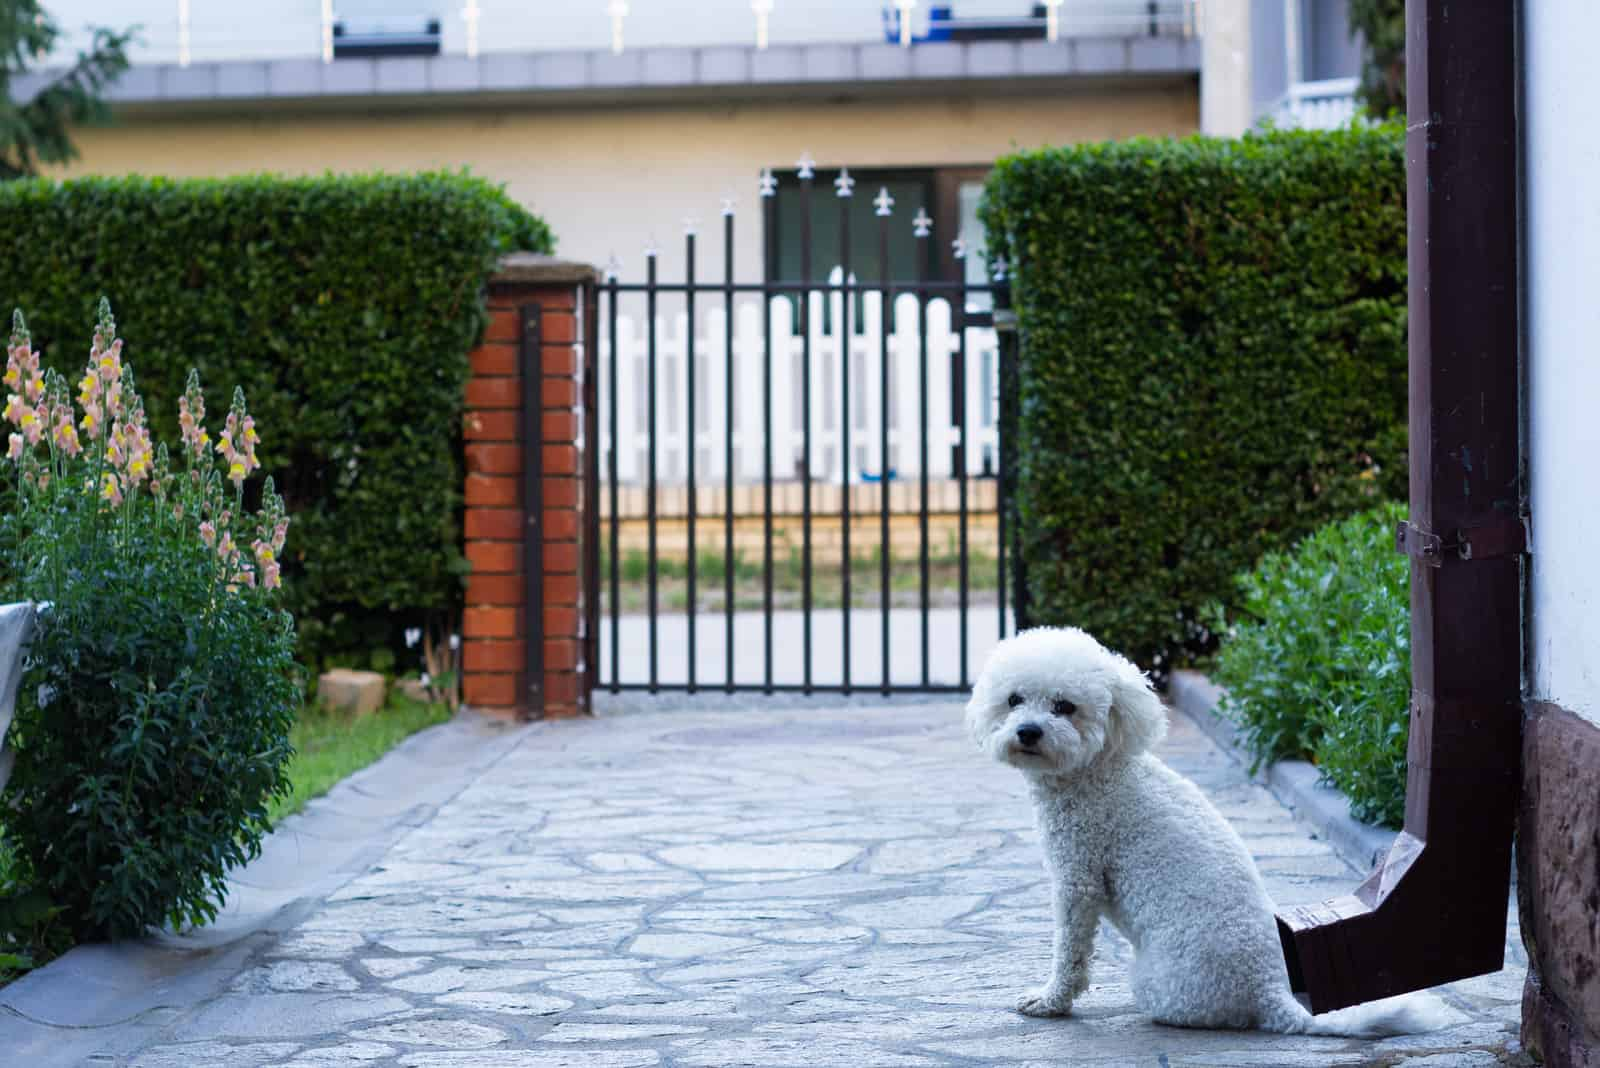 Small bichon frise dog guadring a front garden